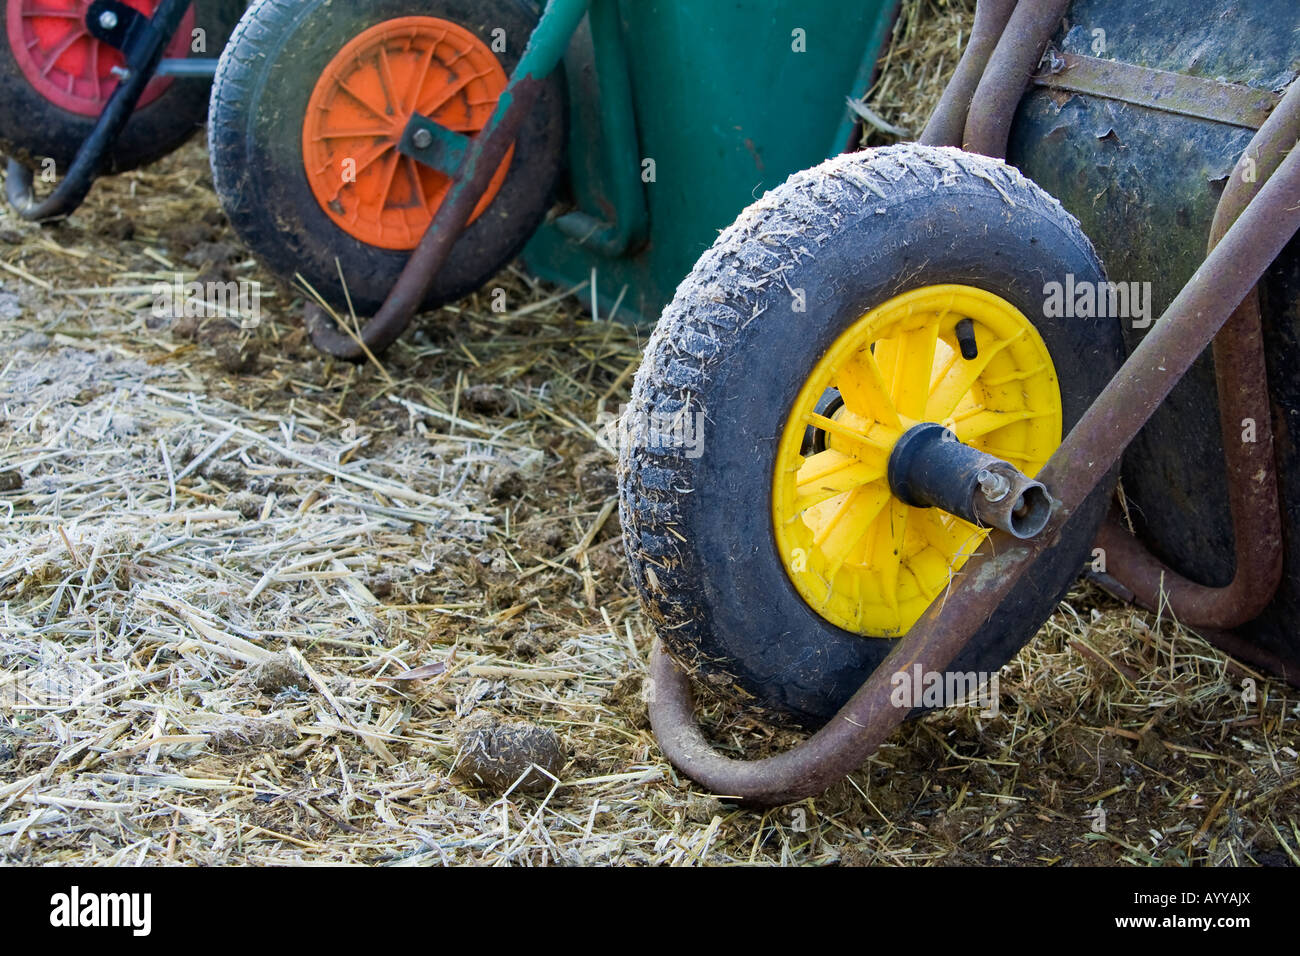 A line of wheelbarrows, UK. - Stock Image